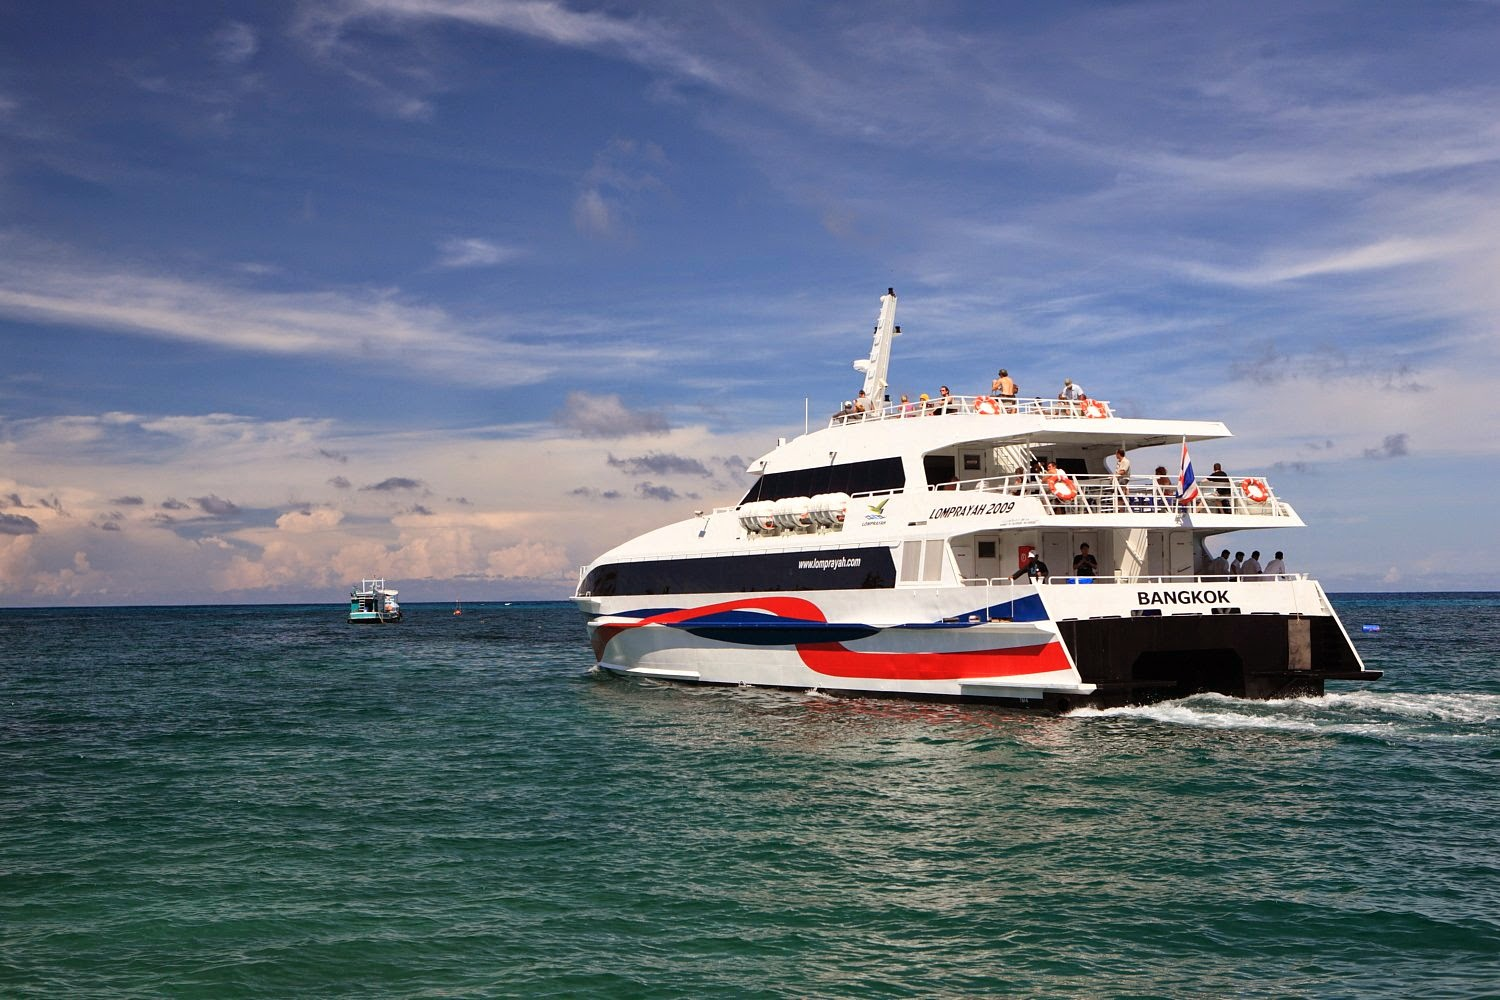 Travel from Koh Phangan to Don Sak Pier by Lomprayah High Speed Catamaran